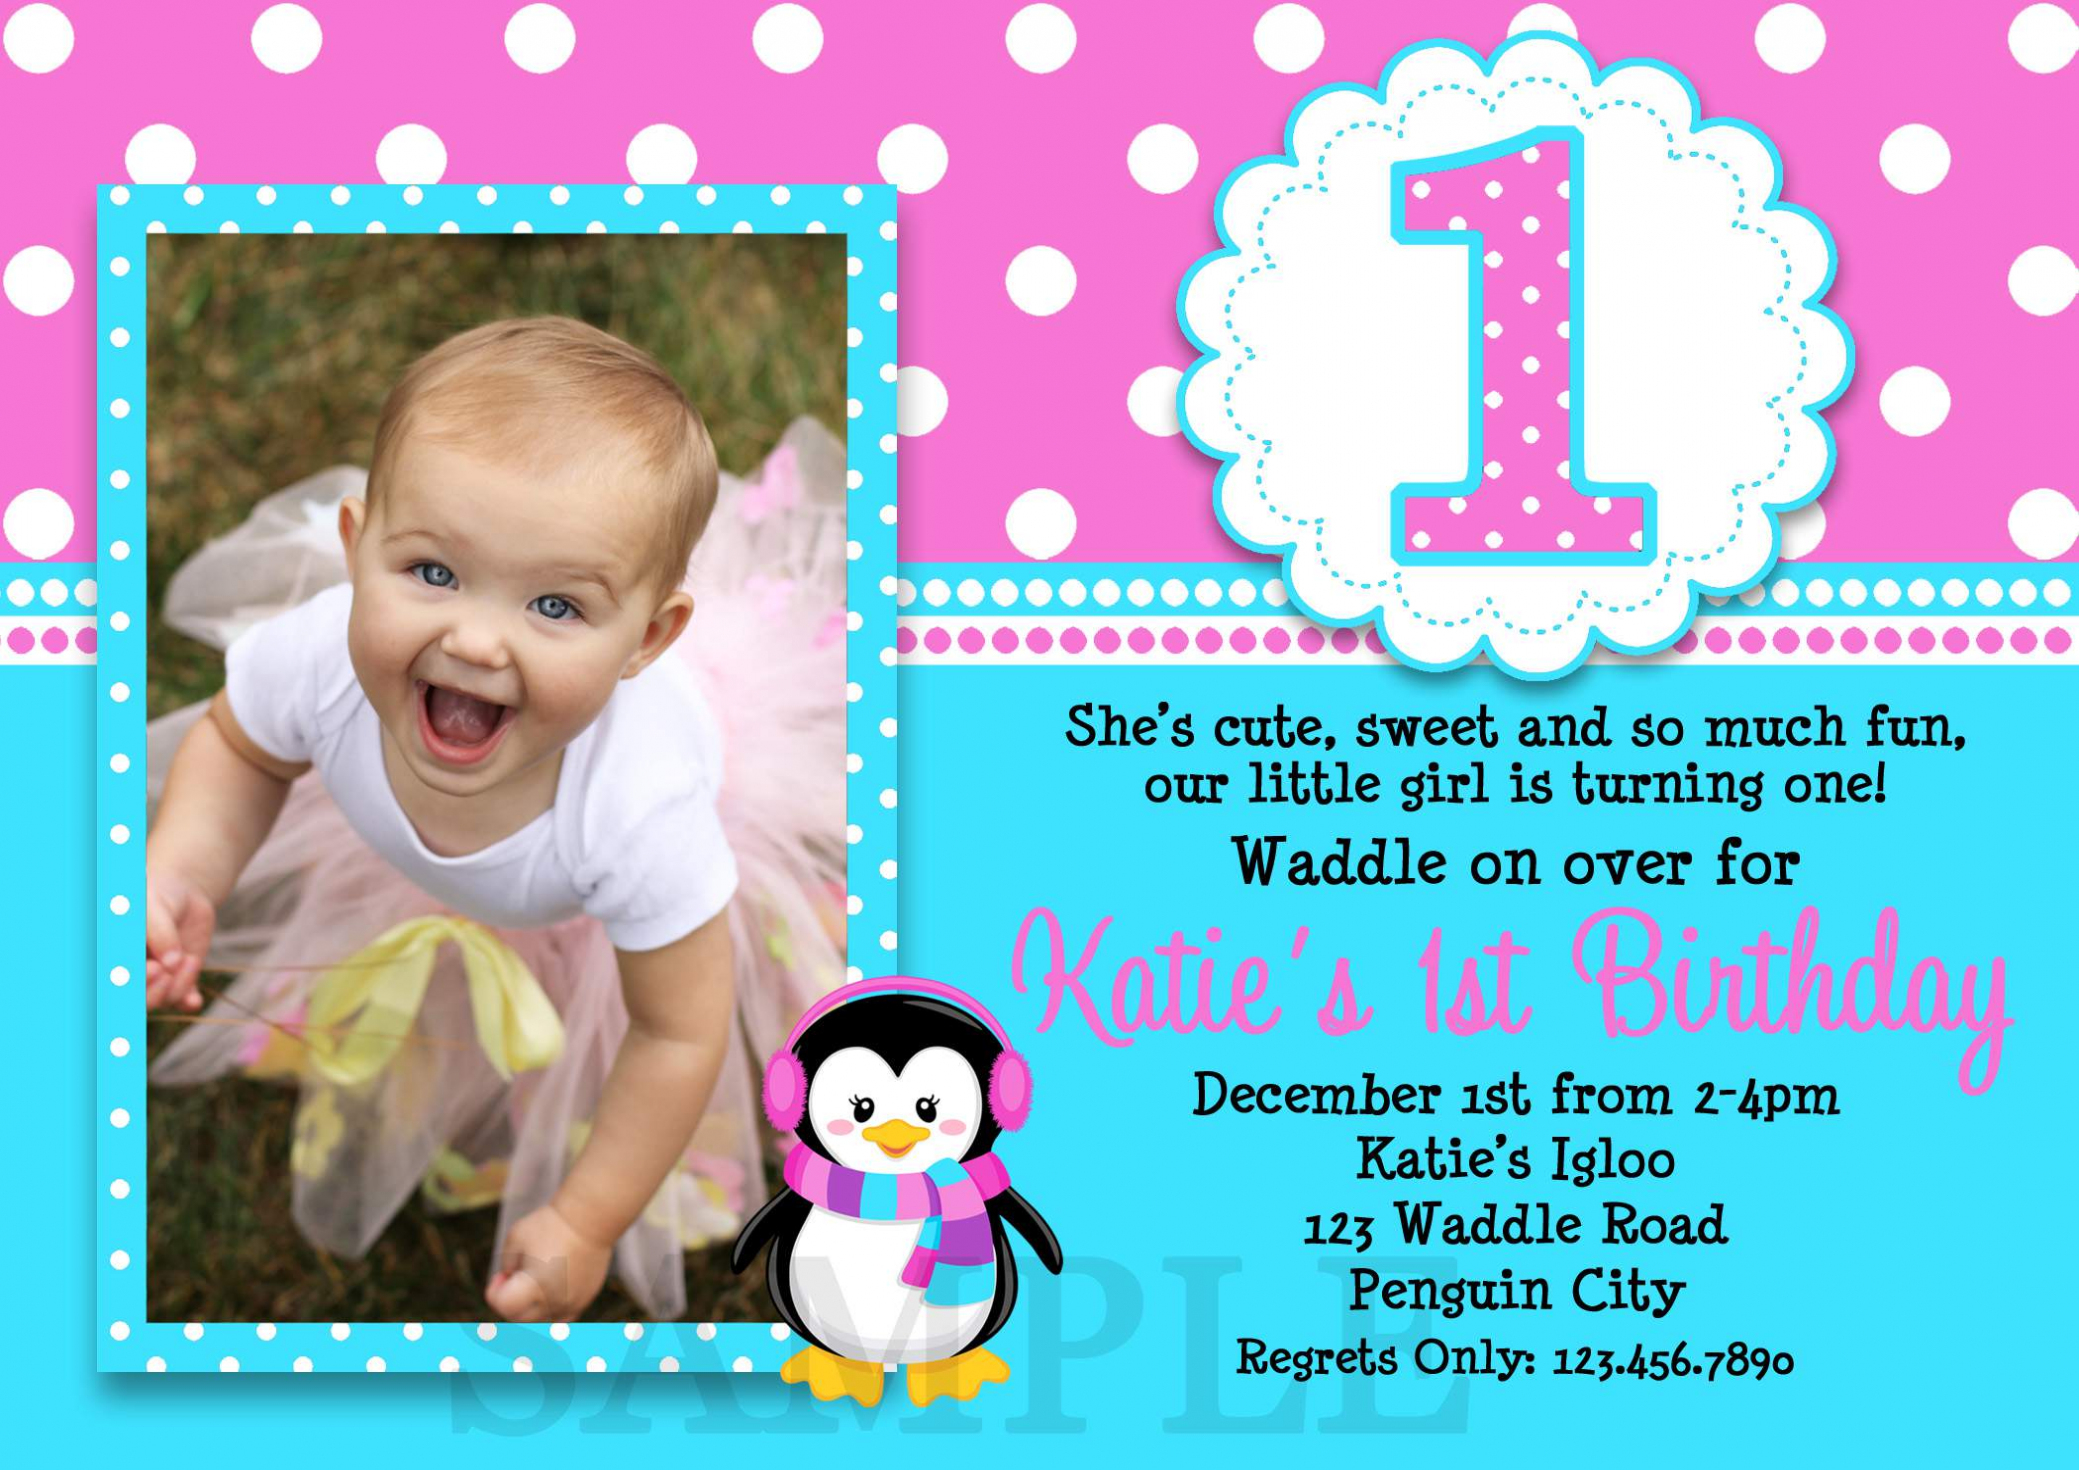 1st birthday party invitation card template free ; 1st-birthday-invitations-templates-free-amazing-invitations-cards-1st-birthday-party-invitations-templates-free